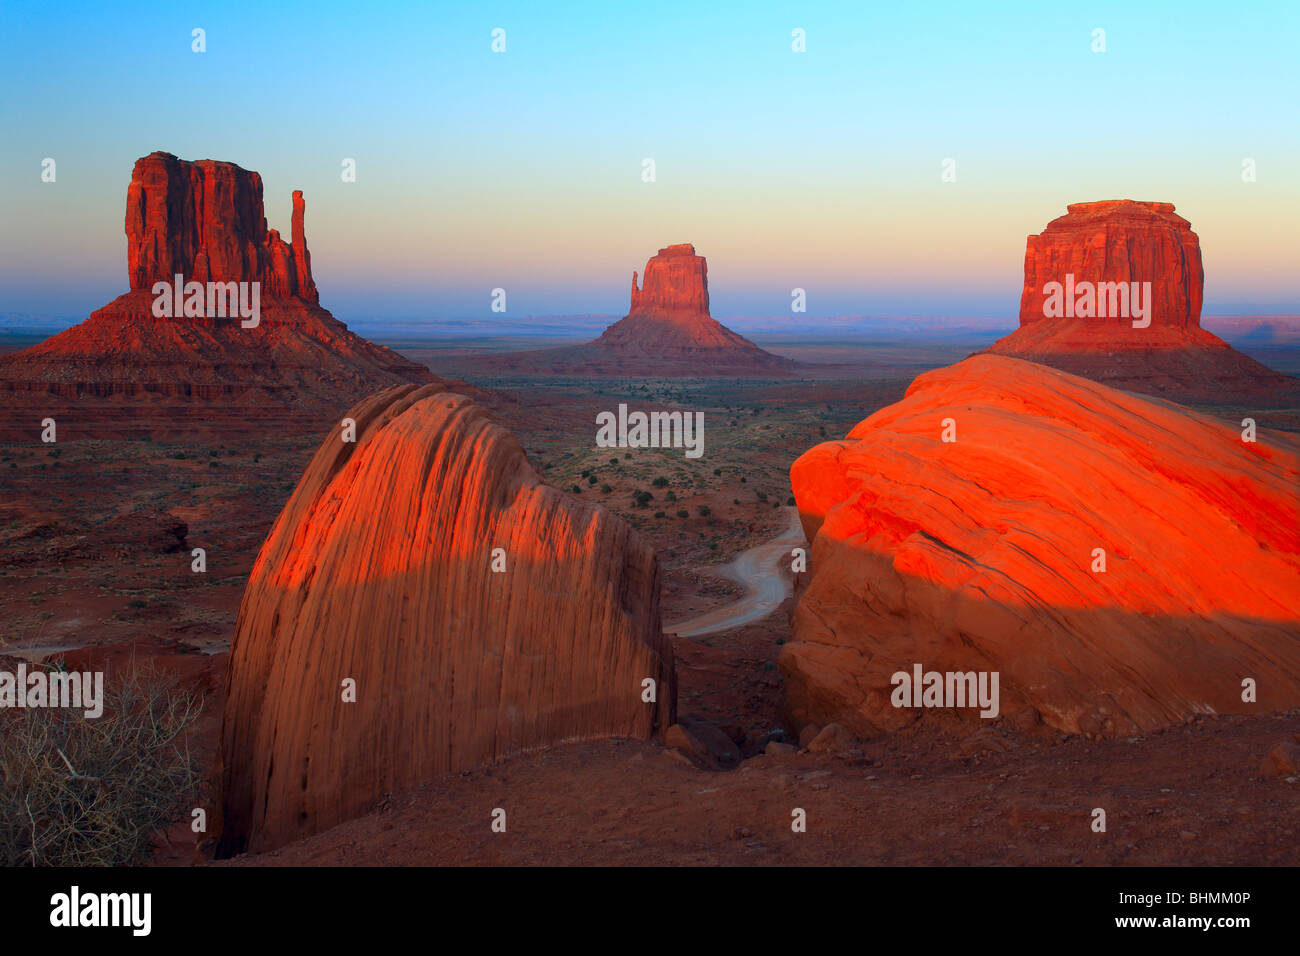 Classic view of the Mittens and Merrick Butte in Monument Valley, AZ - Stock Image